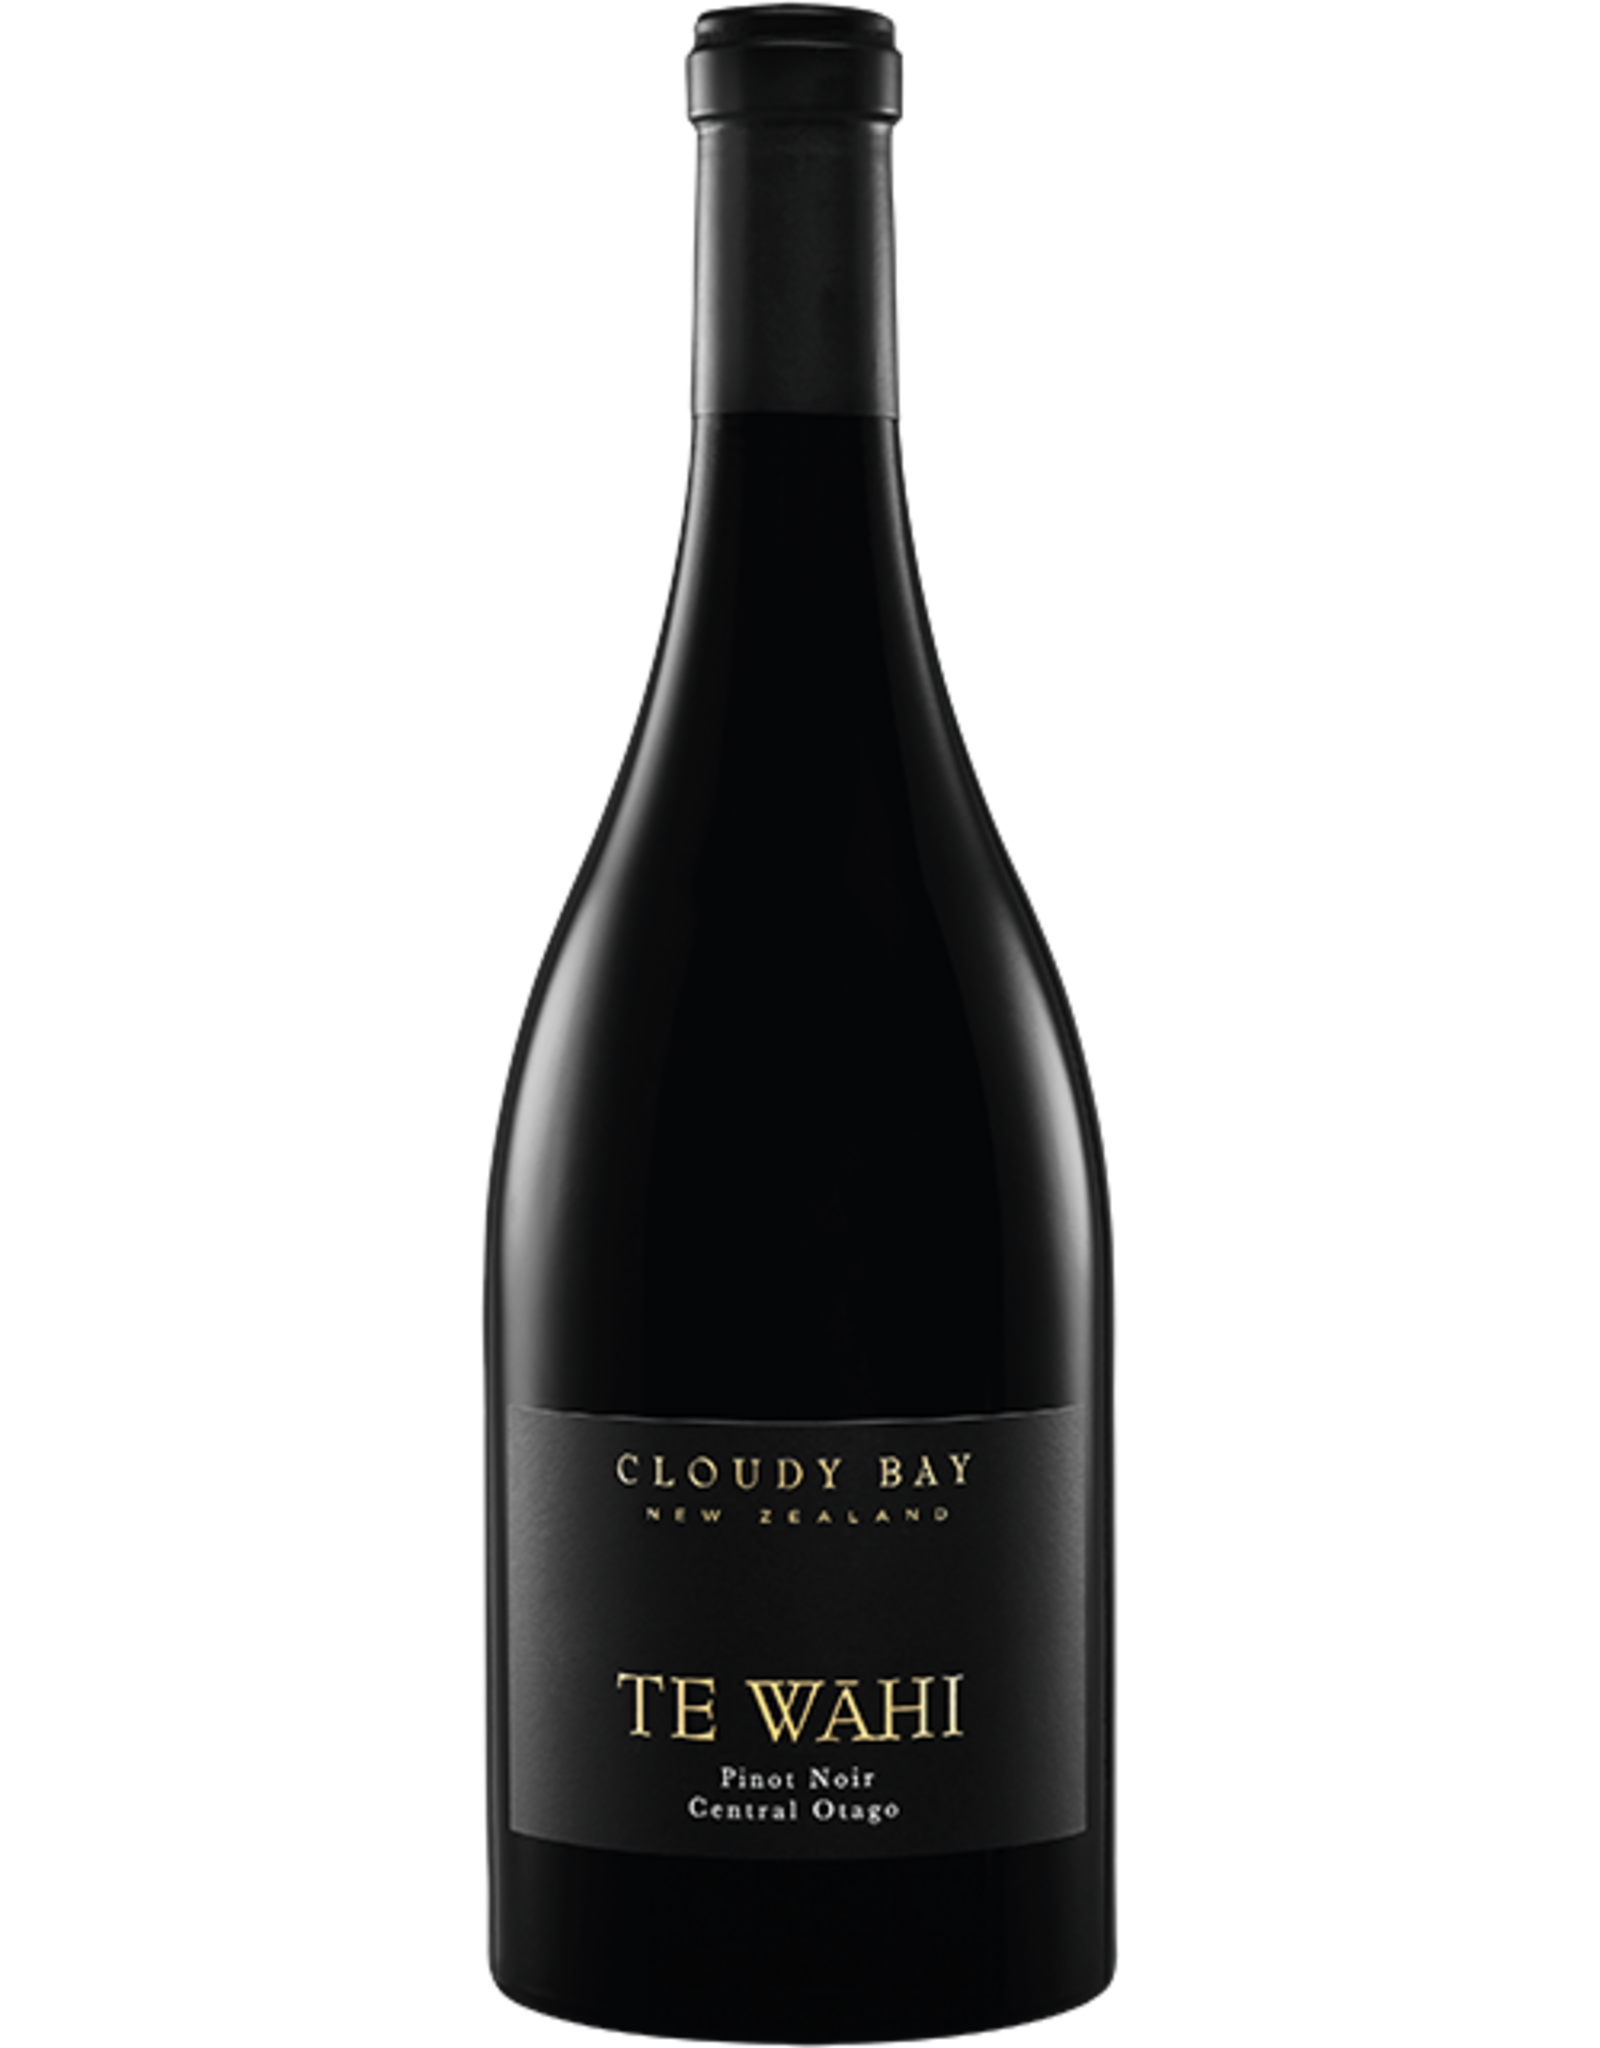 Cloudy Bay Te Wahi Central Otago Pinot Noir 2014